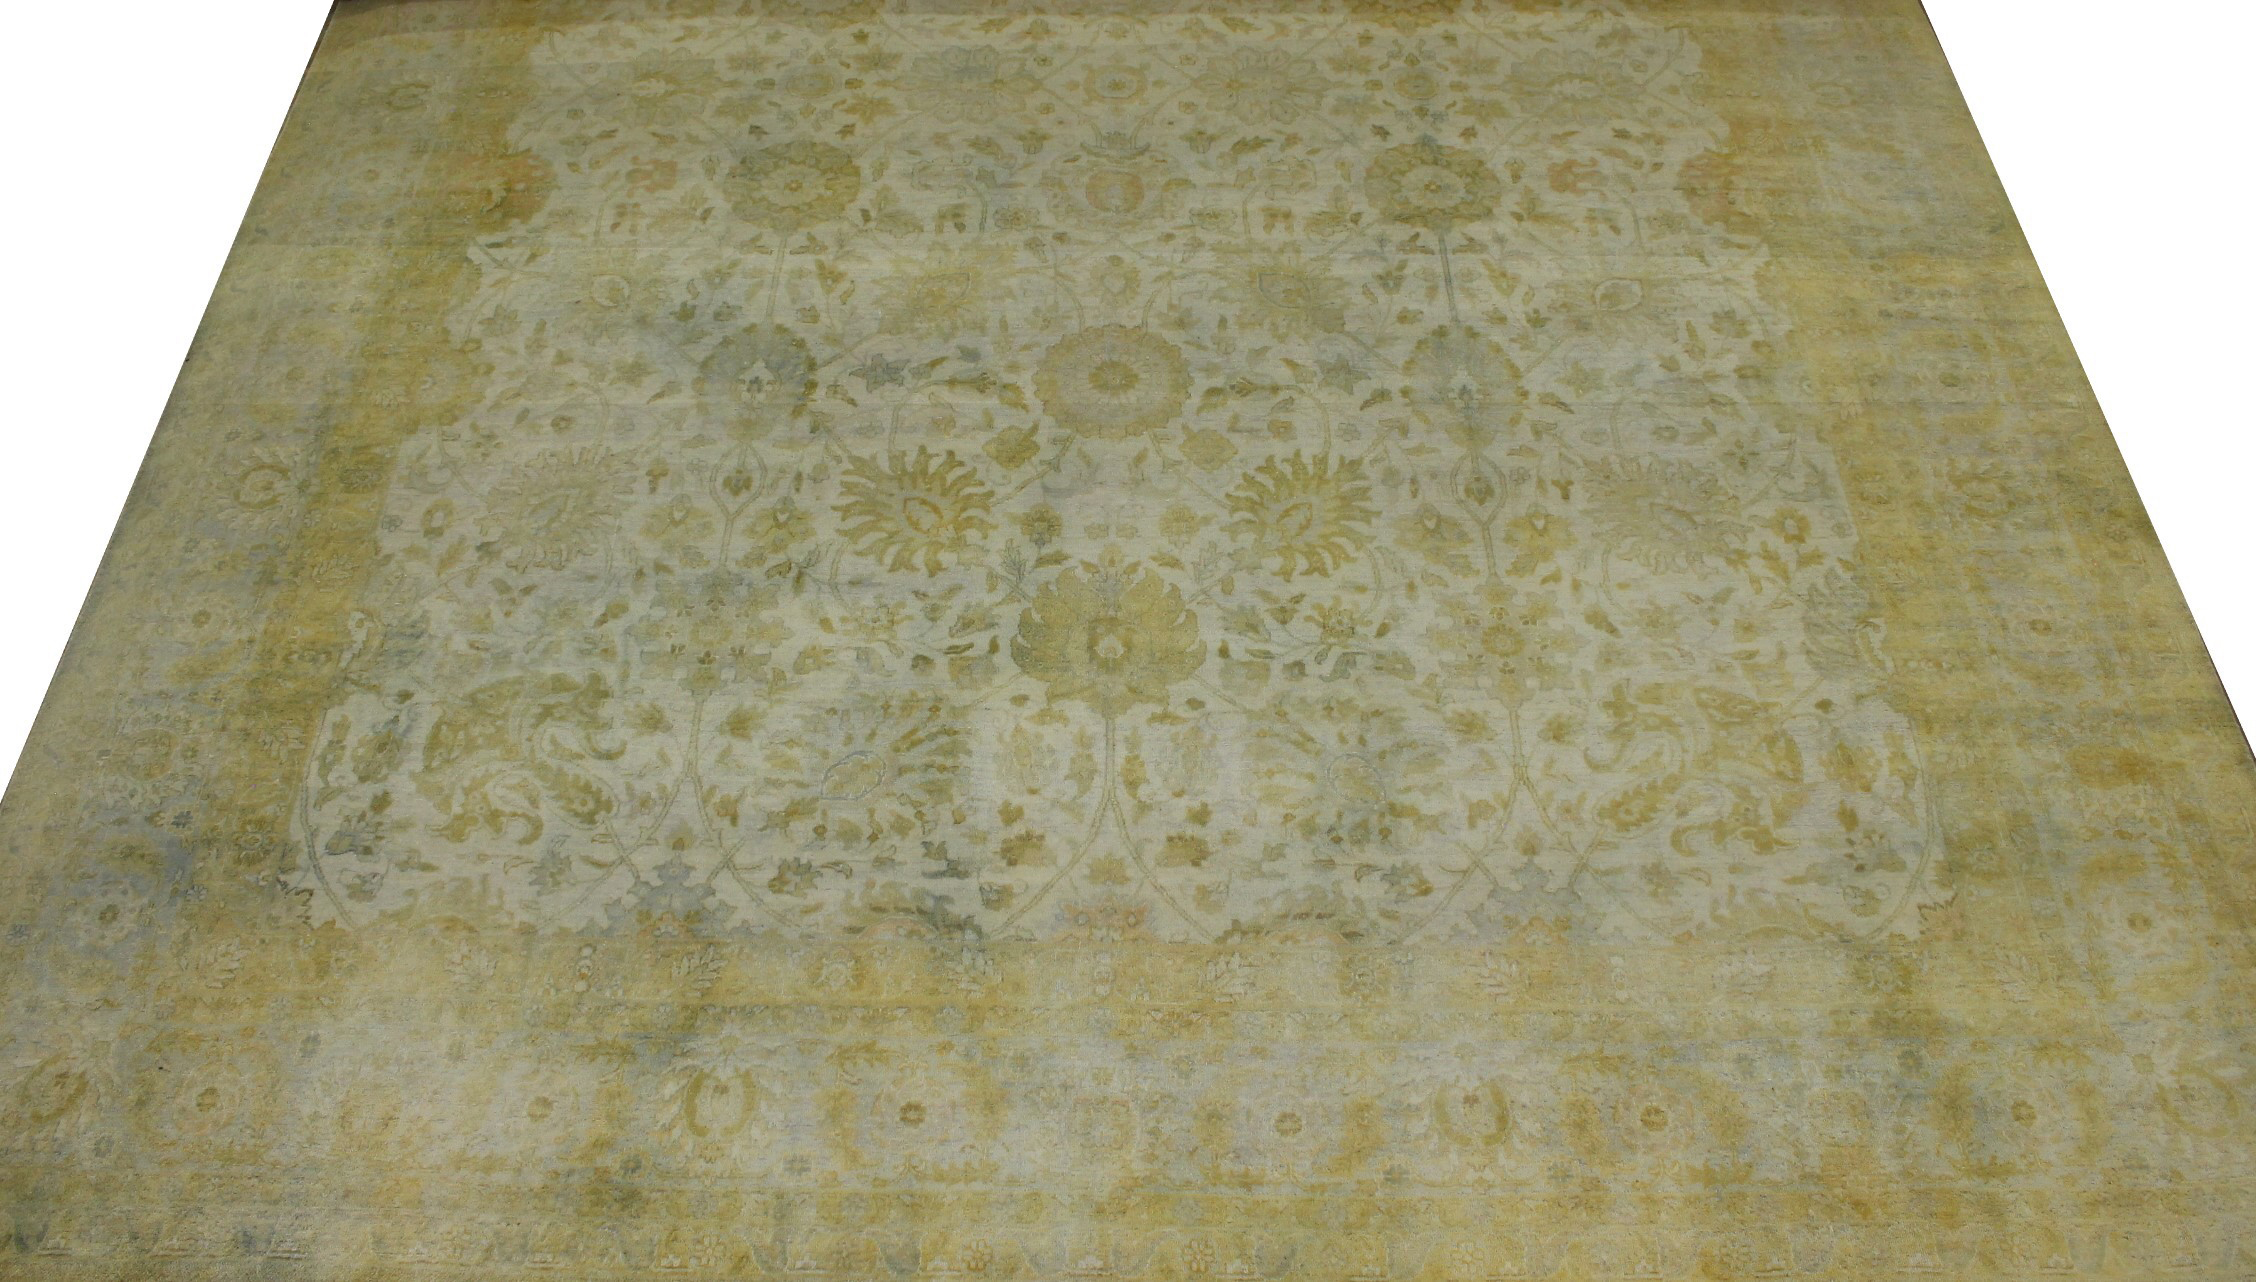 10x14 Antique Revival Hand Knotted Wool Area Rug - MR11668